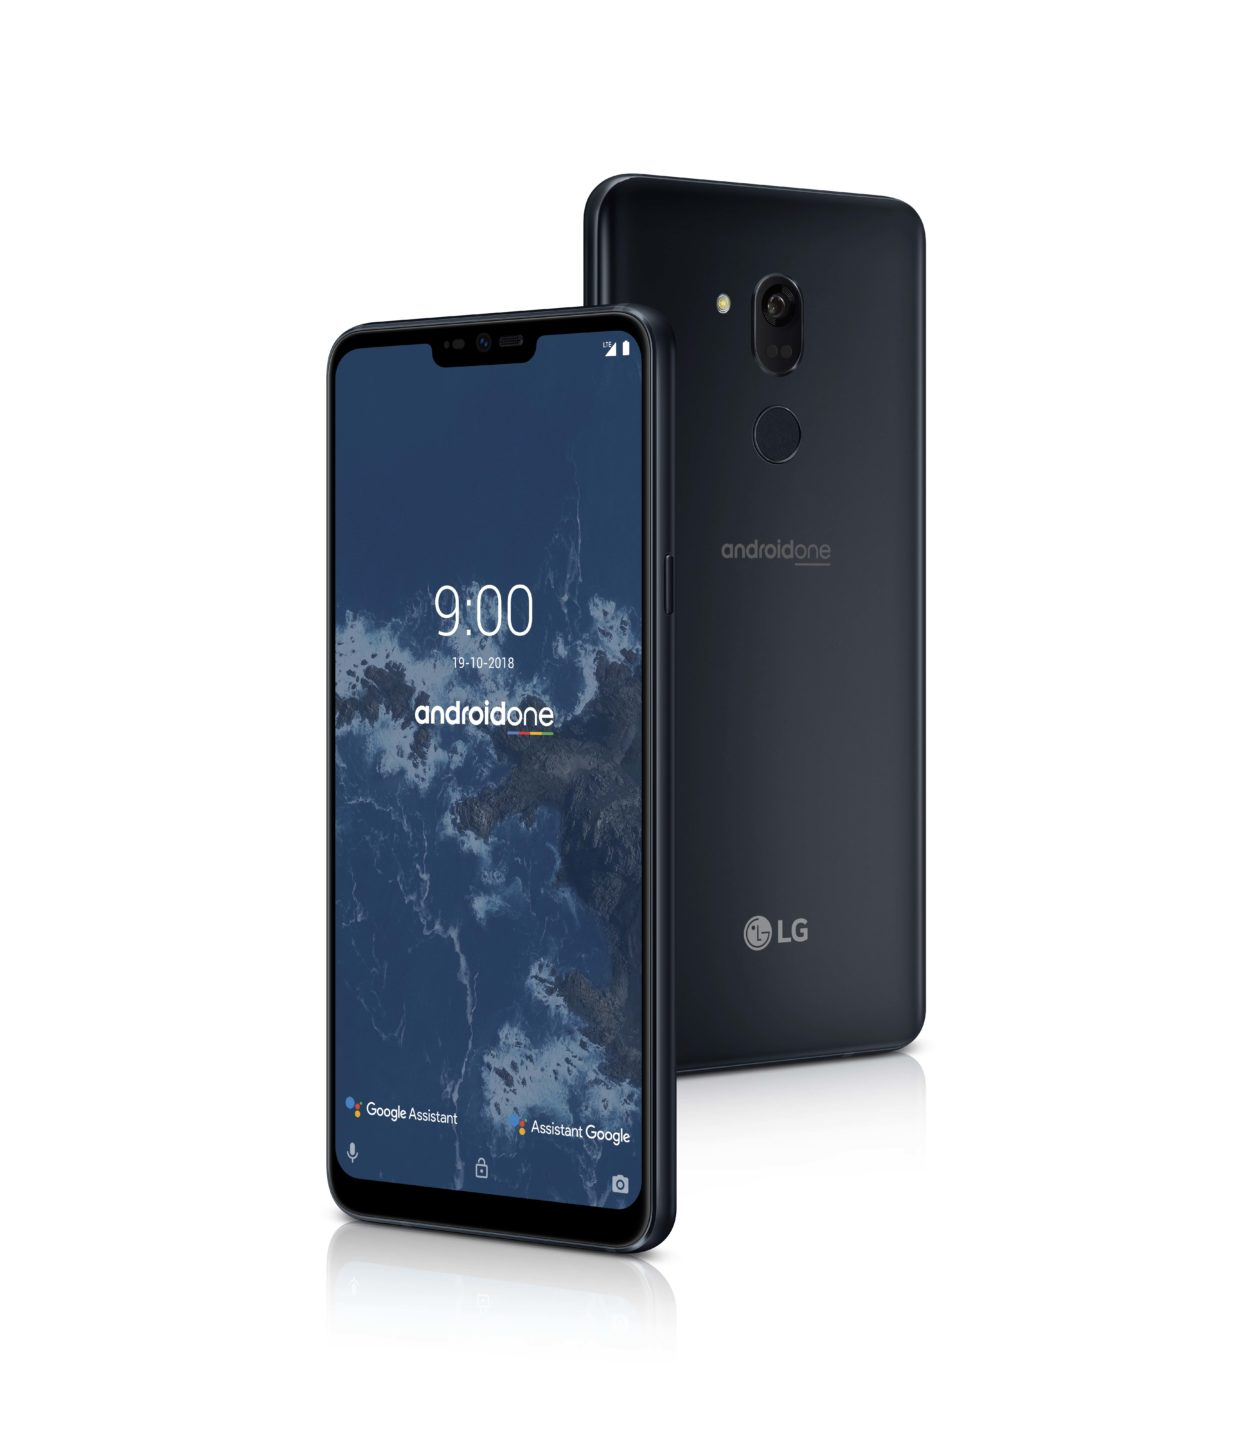 LG G7 One First Ever Premium Android One Device in Canada